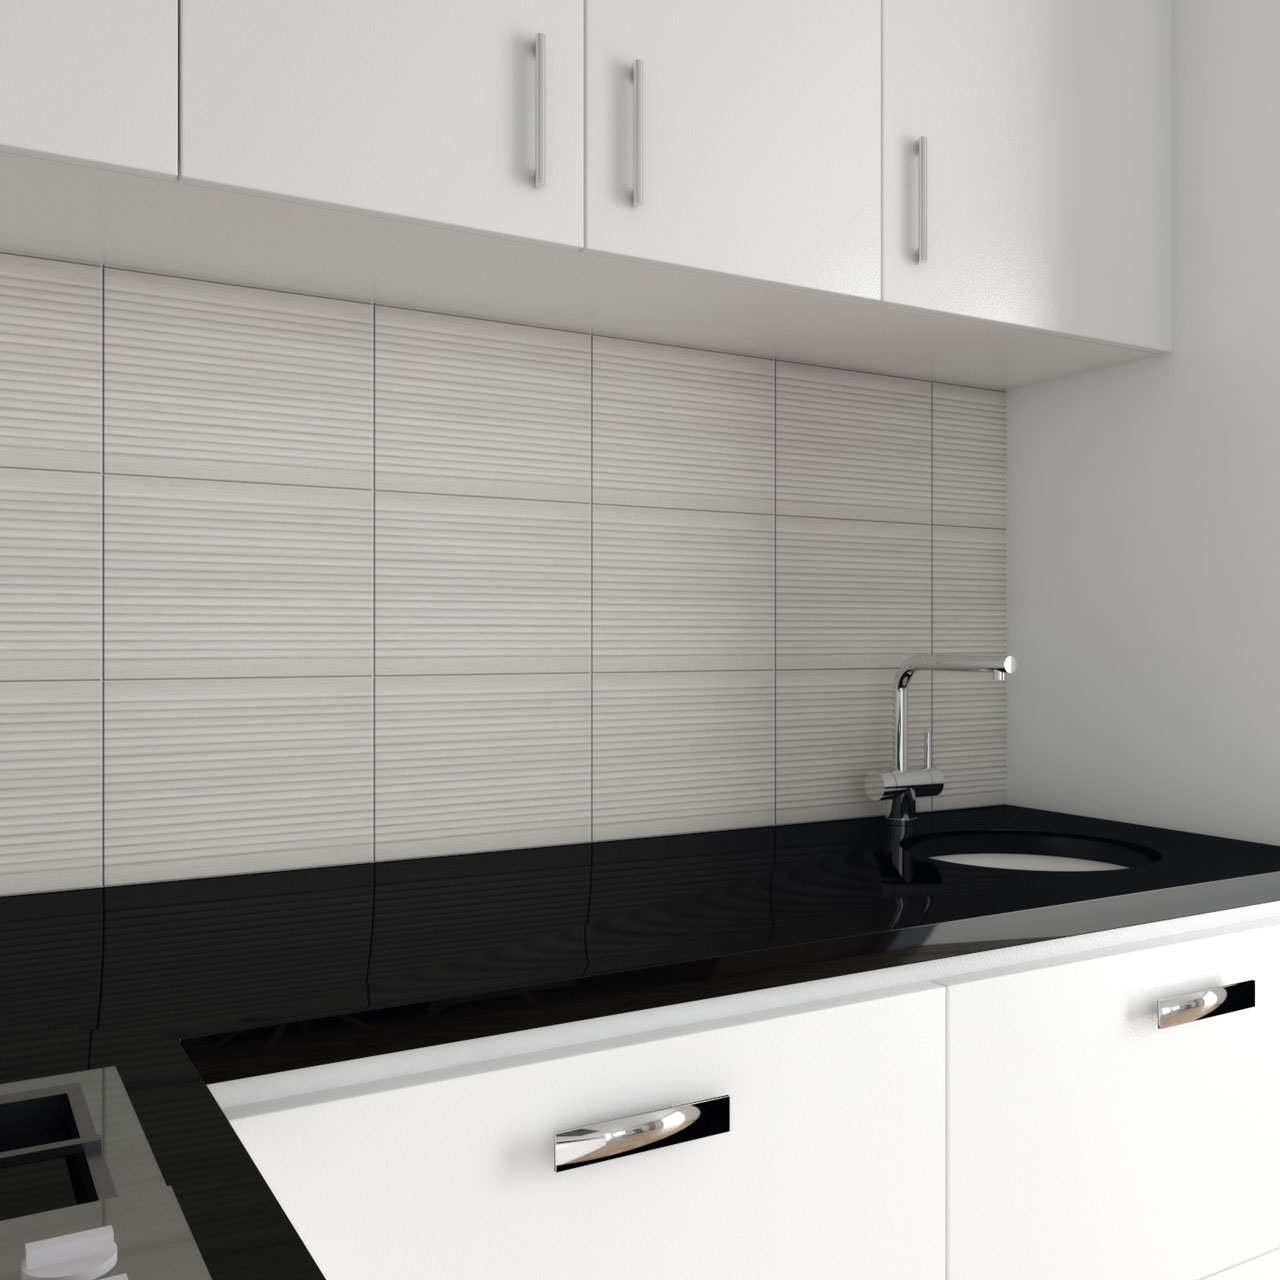 Quartz black kitchen countertops